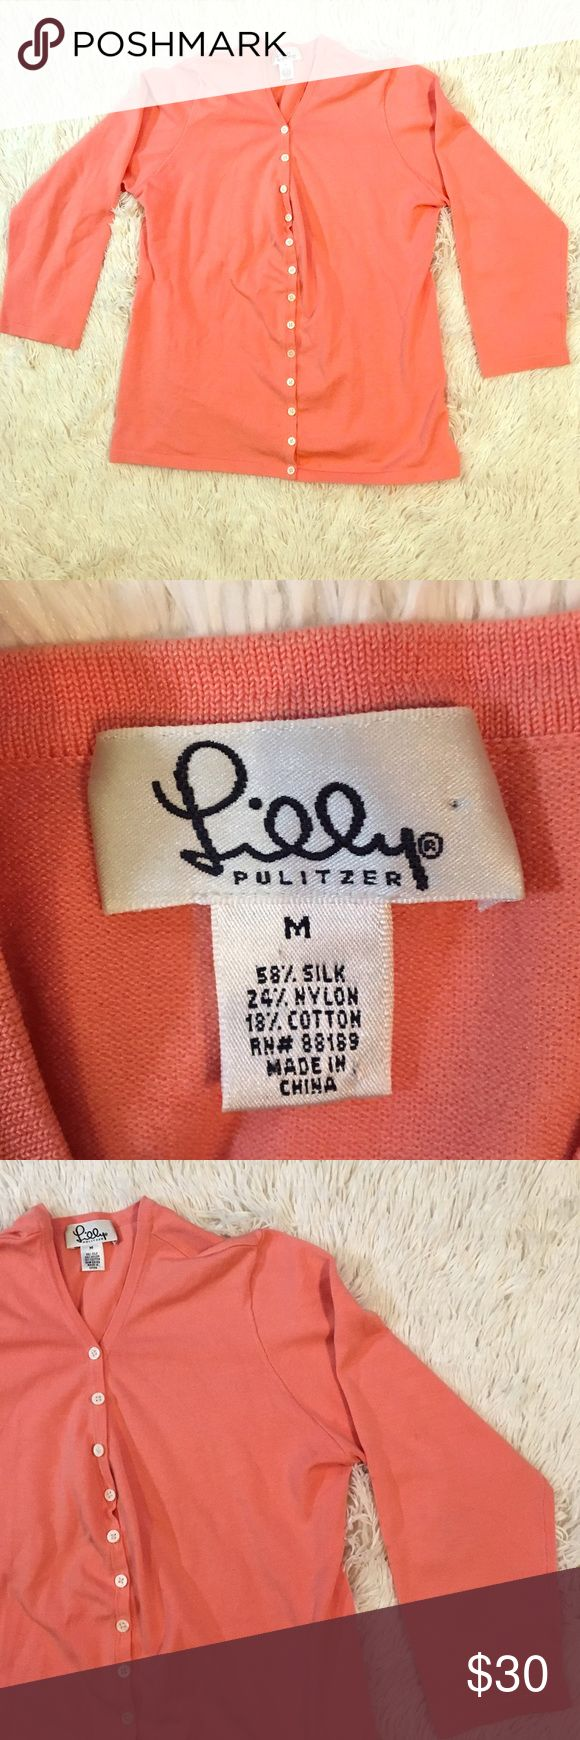 Lilly Pulitzer medium Coral Cardigan Lilly Pulitzer medium Coral Cardigan Lilly Pulitzer Sweaters Cardigans